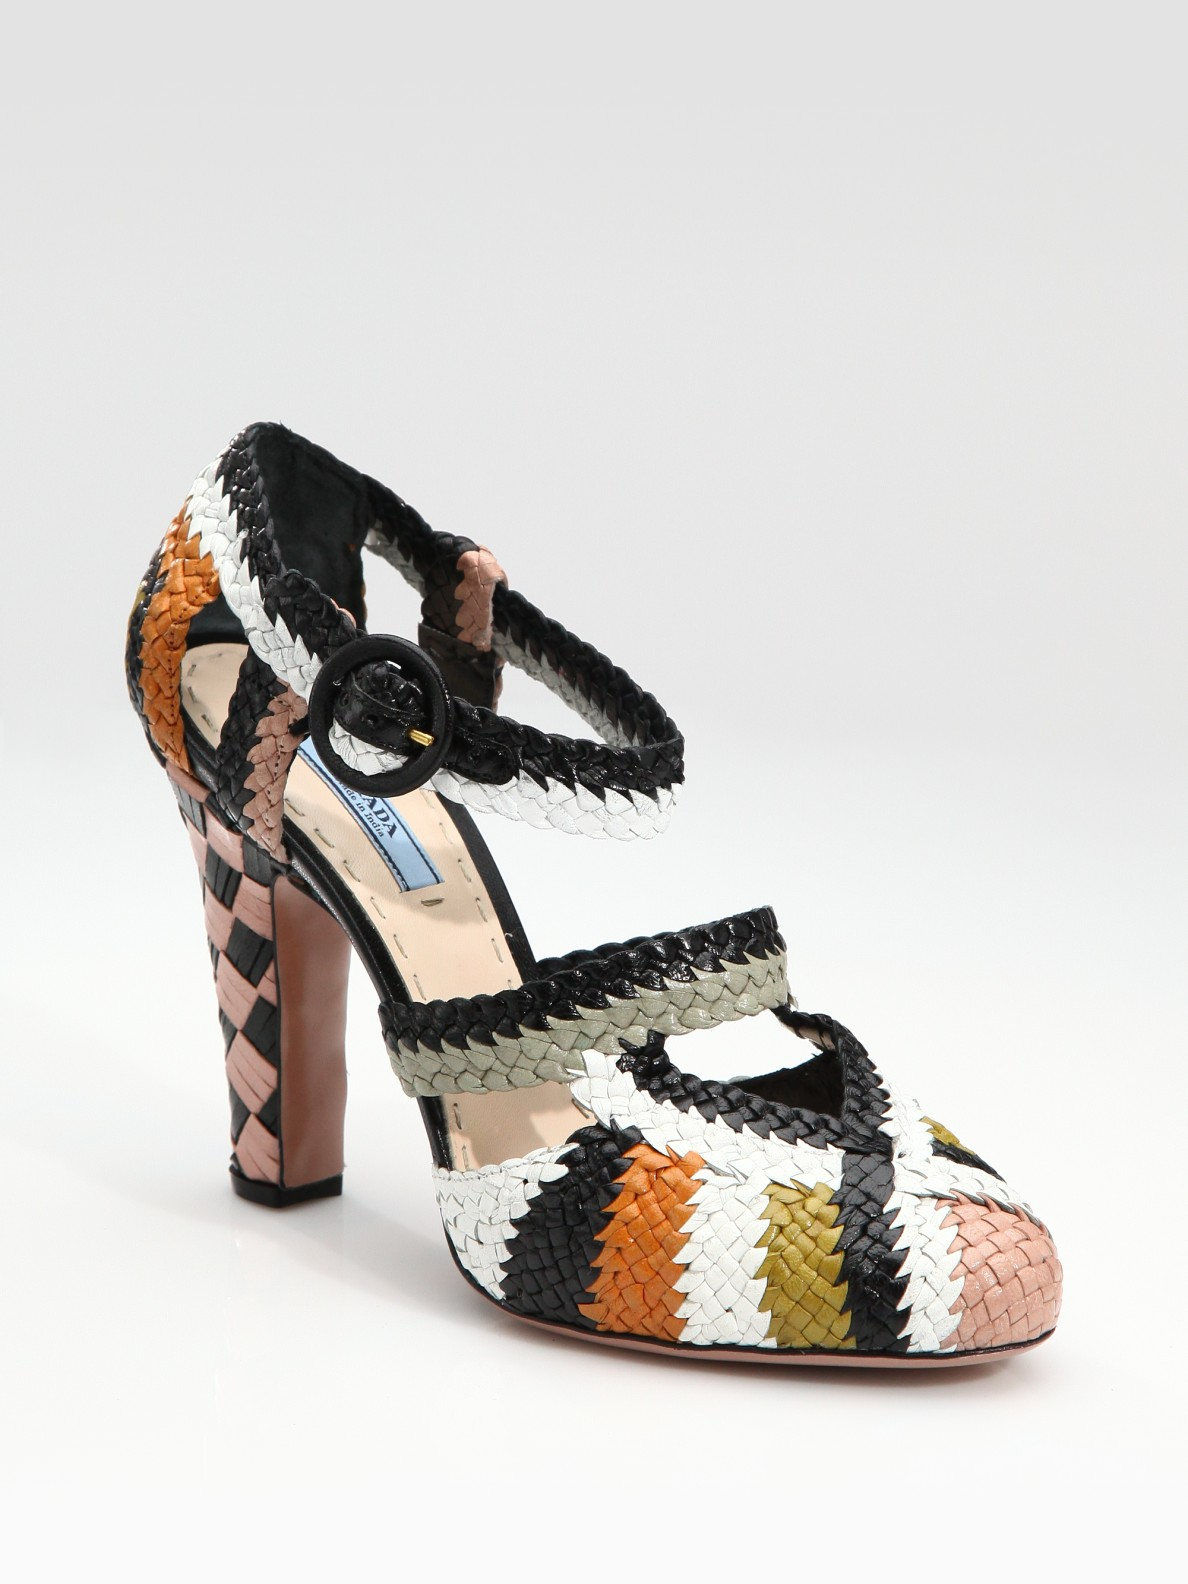 Prada Woven Embellished Pumps collections cheap sale for cheap fake for sale visa payment low shipping fee online 93D1c